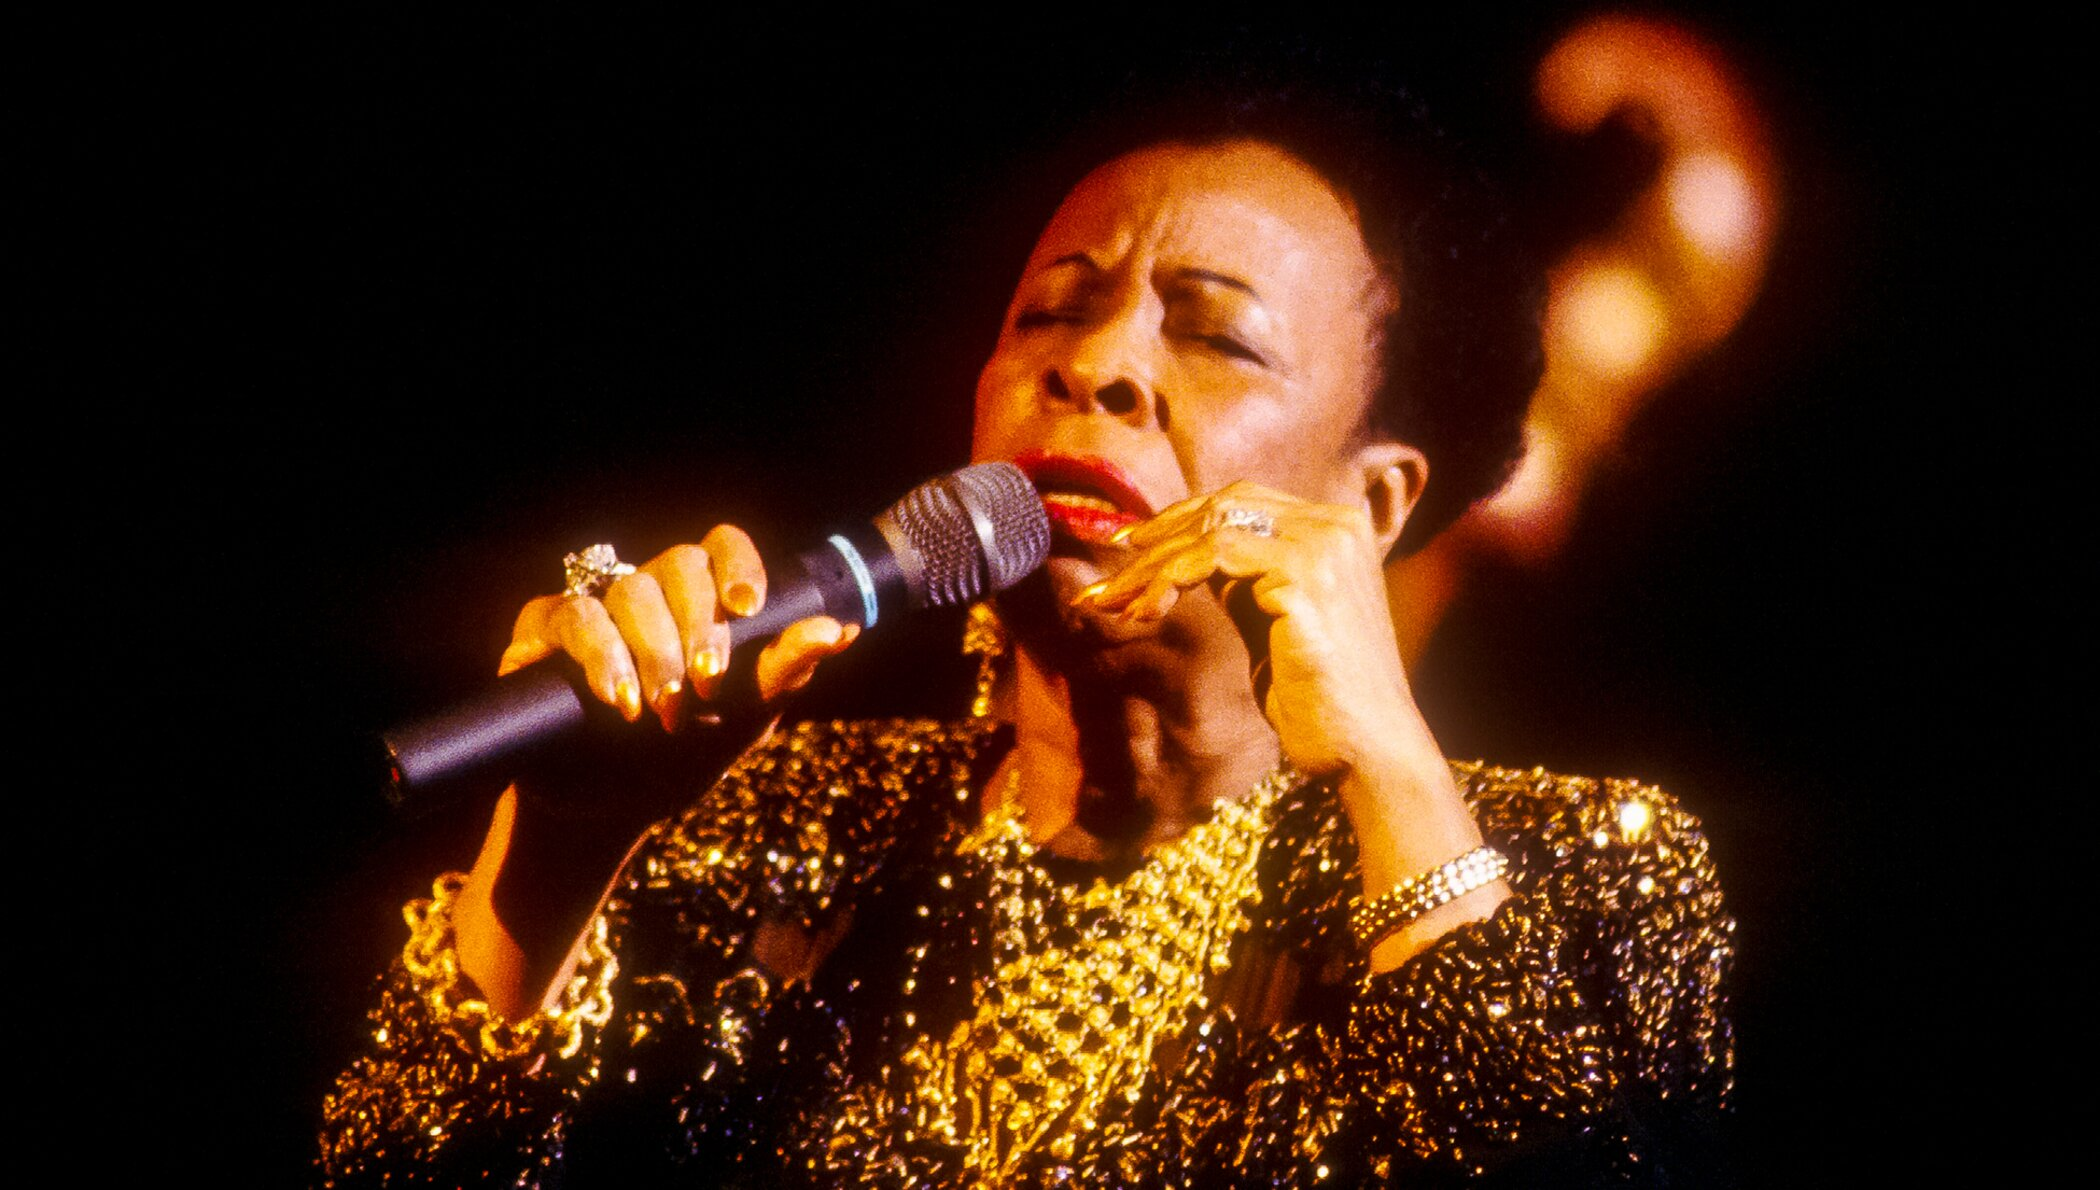 The jazz singer's mind shows us how to improvise through life itself